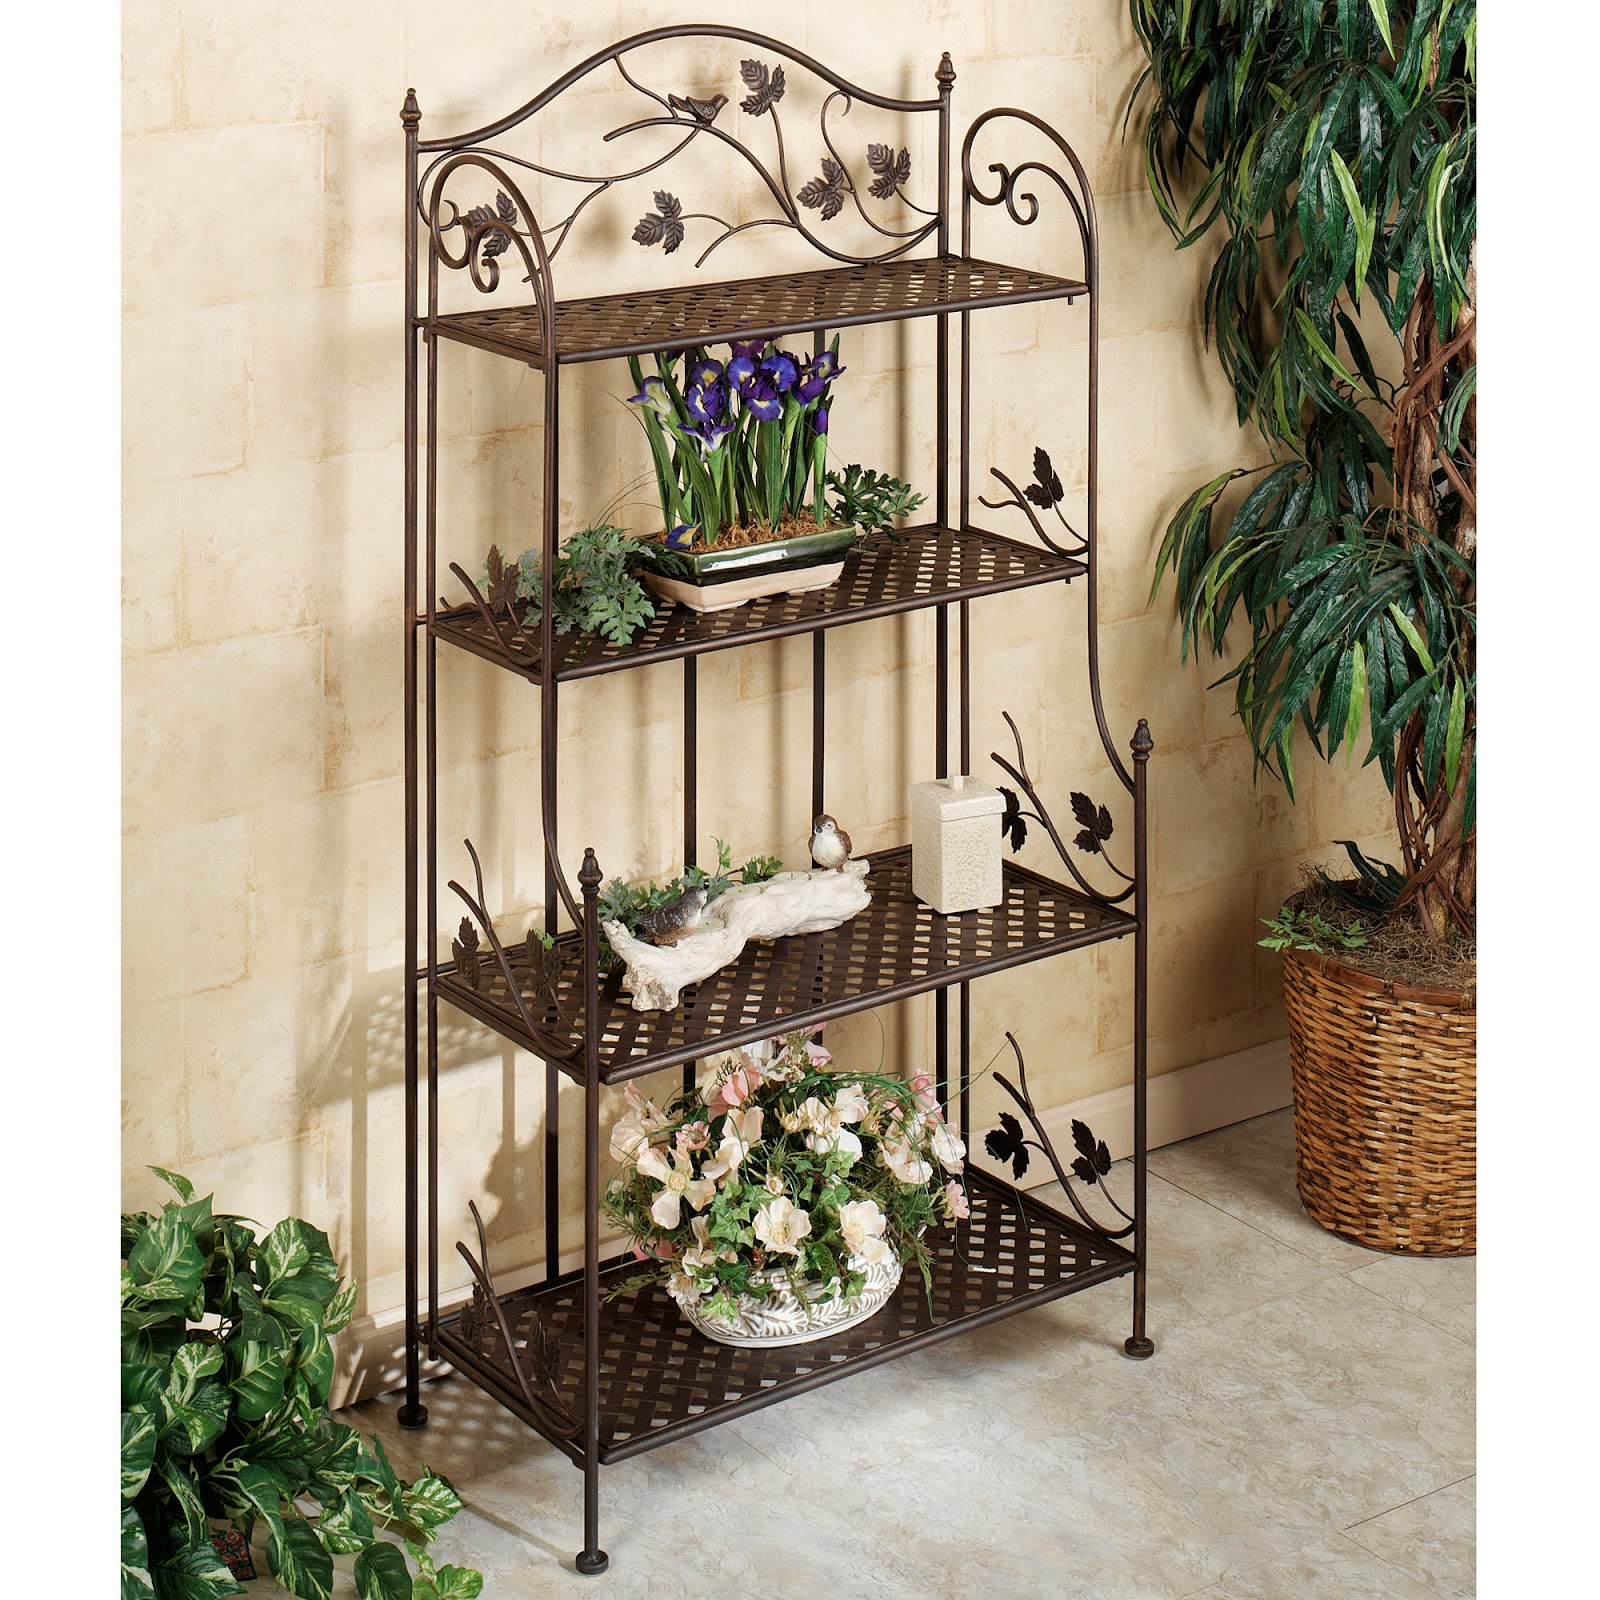 Plant Shelving Indoor Nice Ideas For Your Small Garden Vietnam Outdoor Garden